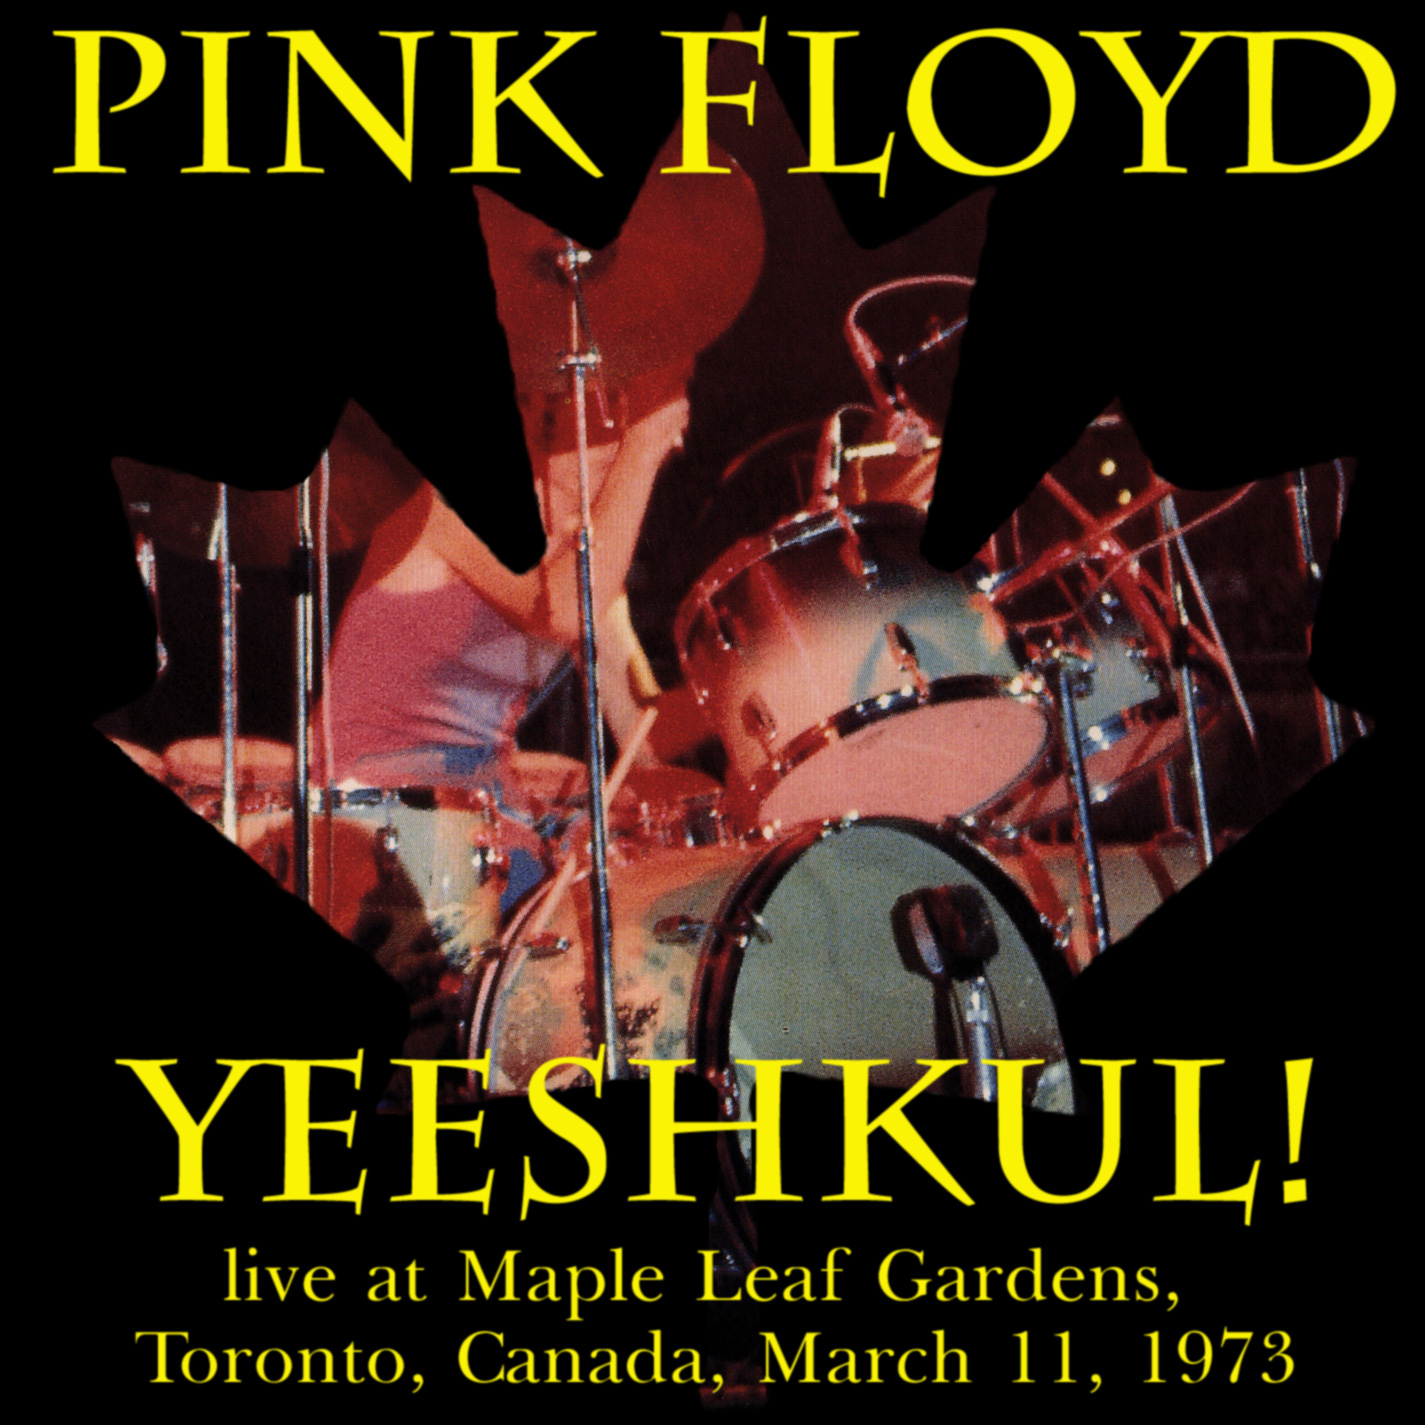 Lossless Search Results for Pink Floyd - Yeeshkul! - 1973-03-11